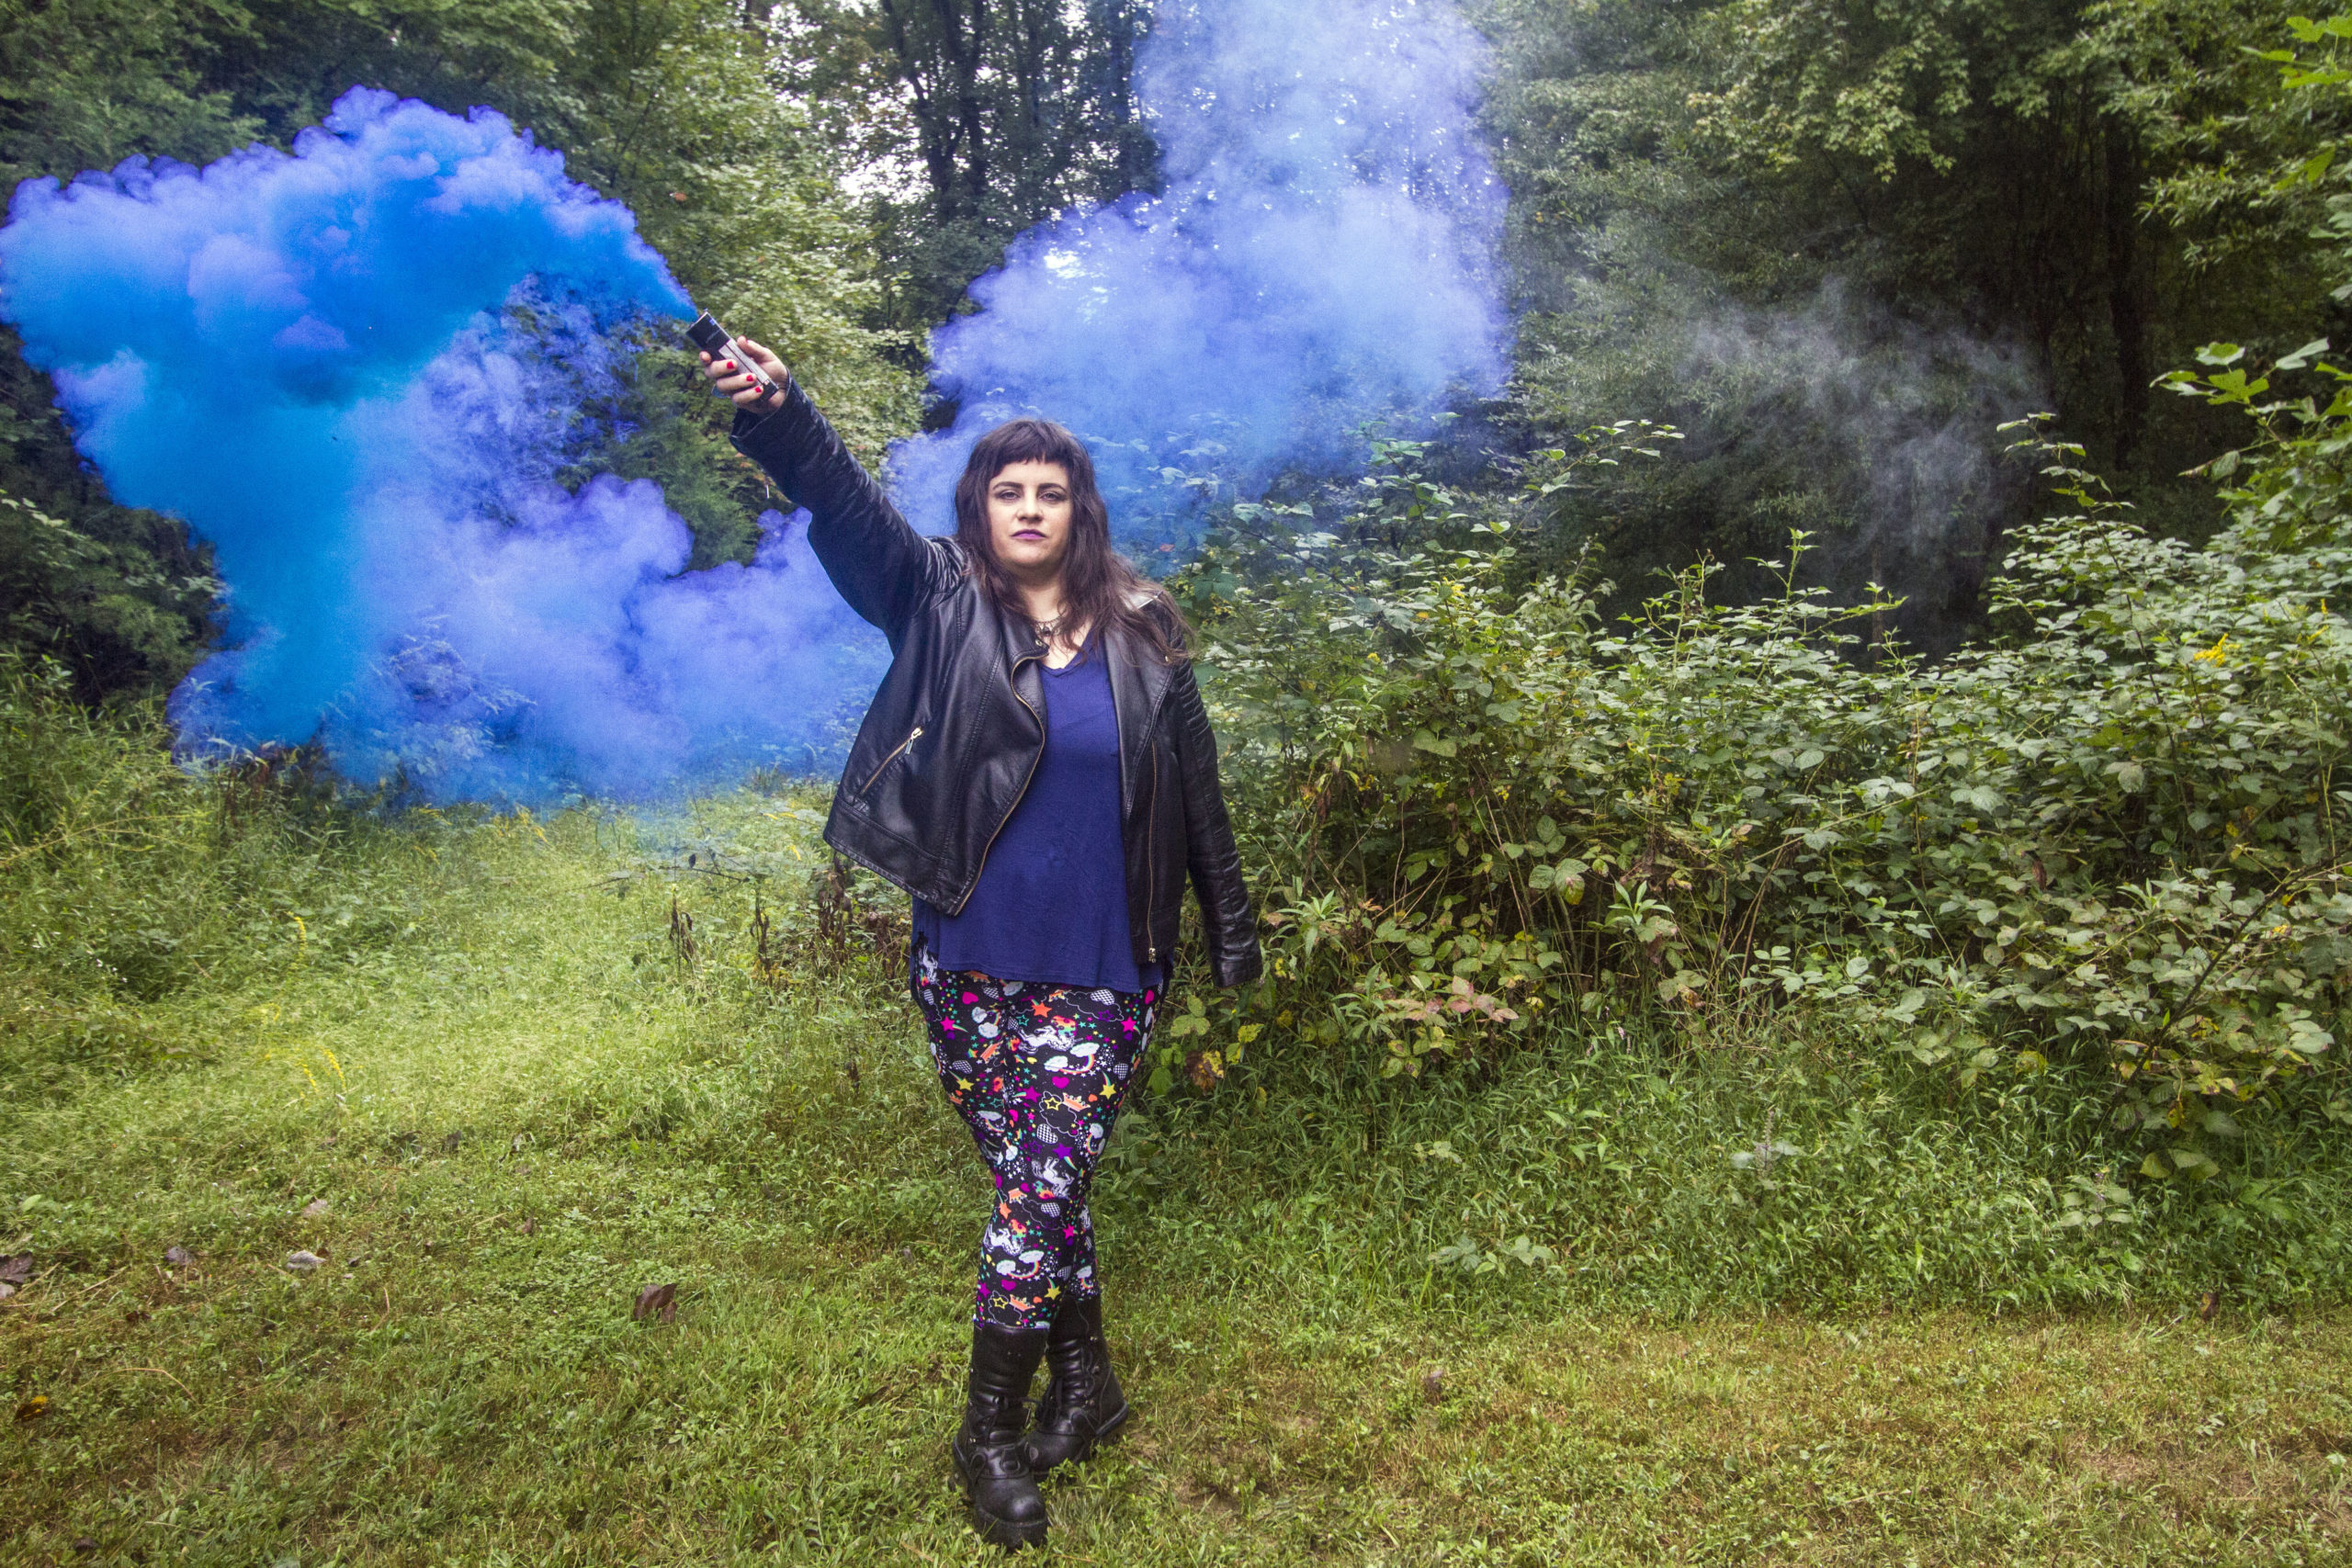 A green meadow background. I, a white nonbinary person with long brown hair, hold a blue smoke bomb up in the air. The smoke cascades behind me. I am wearing a black leather jacket, a navy blue shirt, large black boots, and black leggings with a print of unicorns and rainbows.